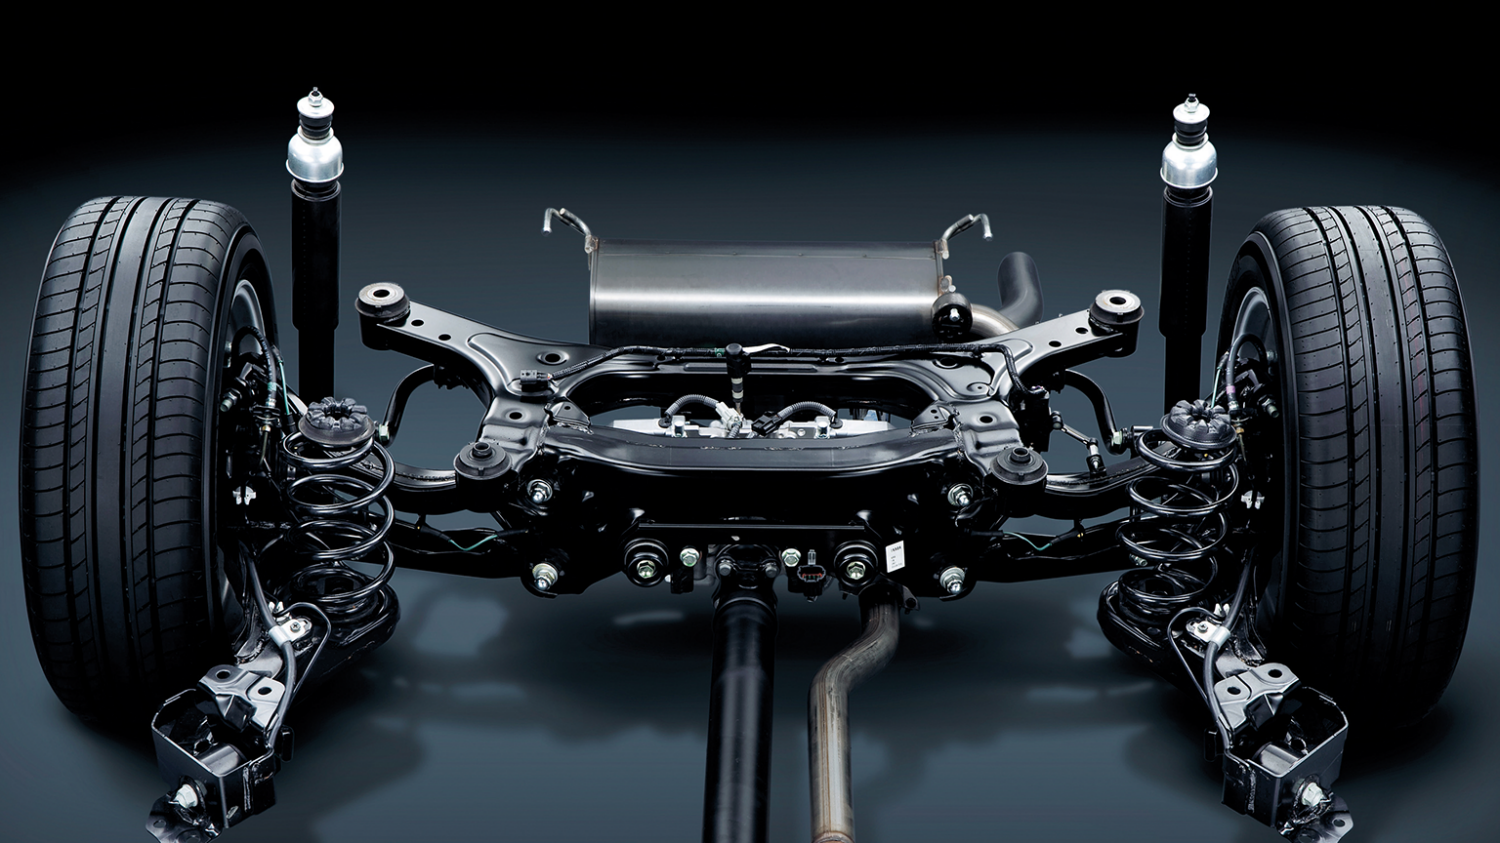 Multi-link rear suspension